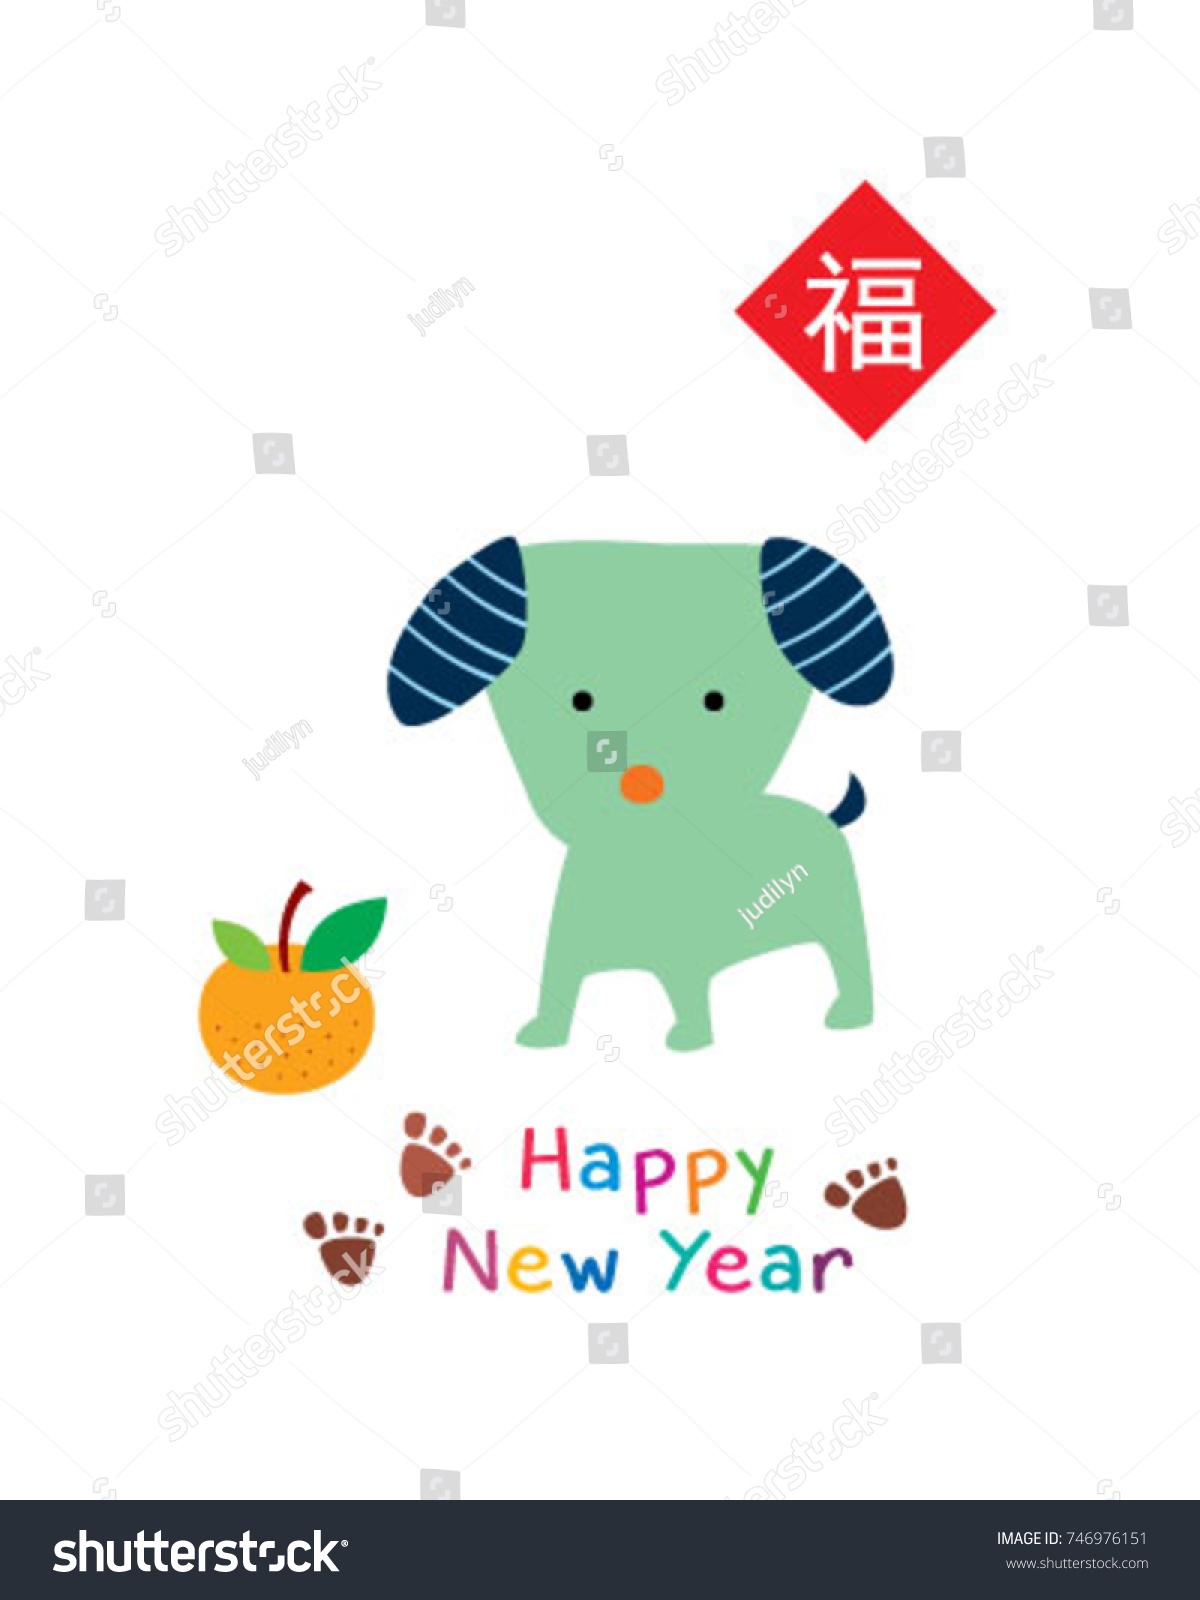 Cute Puppy Happy New Year Greeting Stock Vector (Royalty Free ...